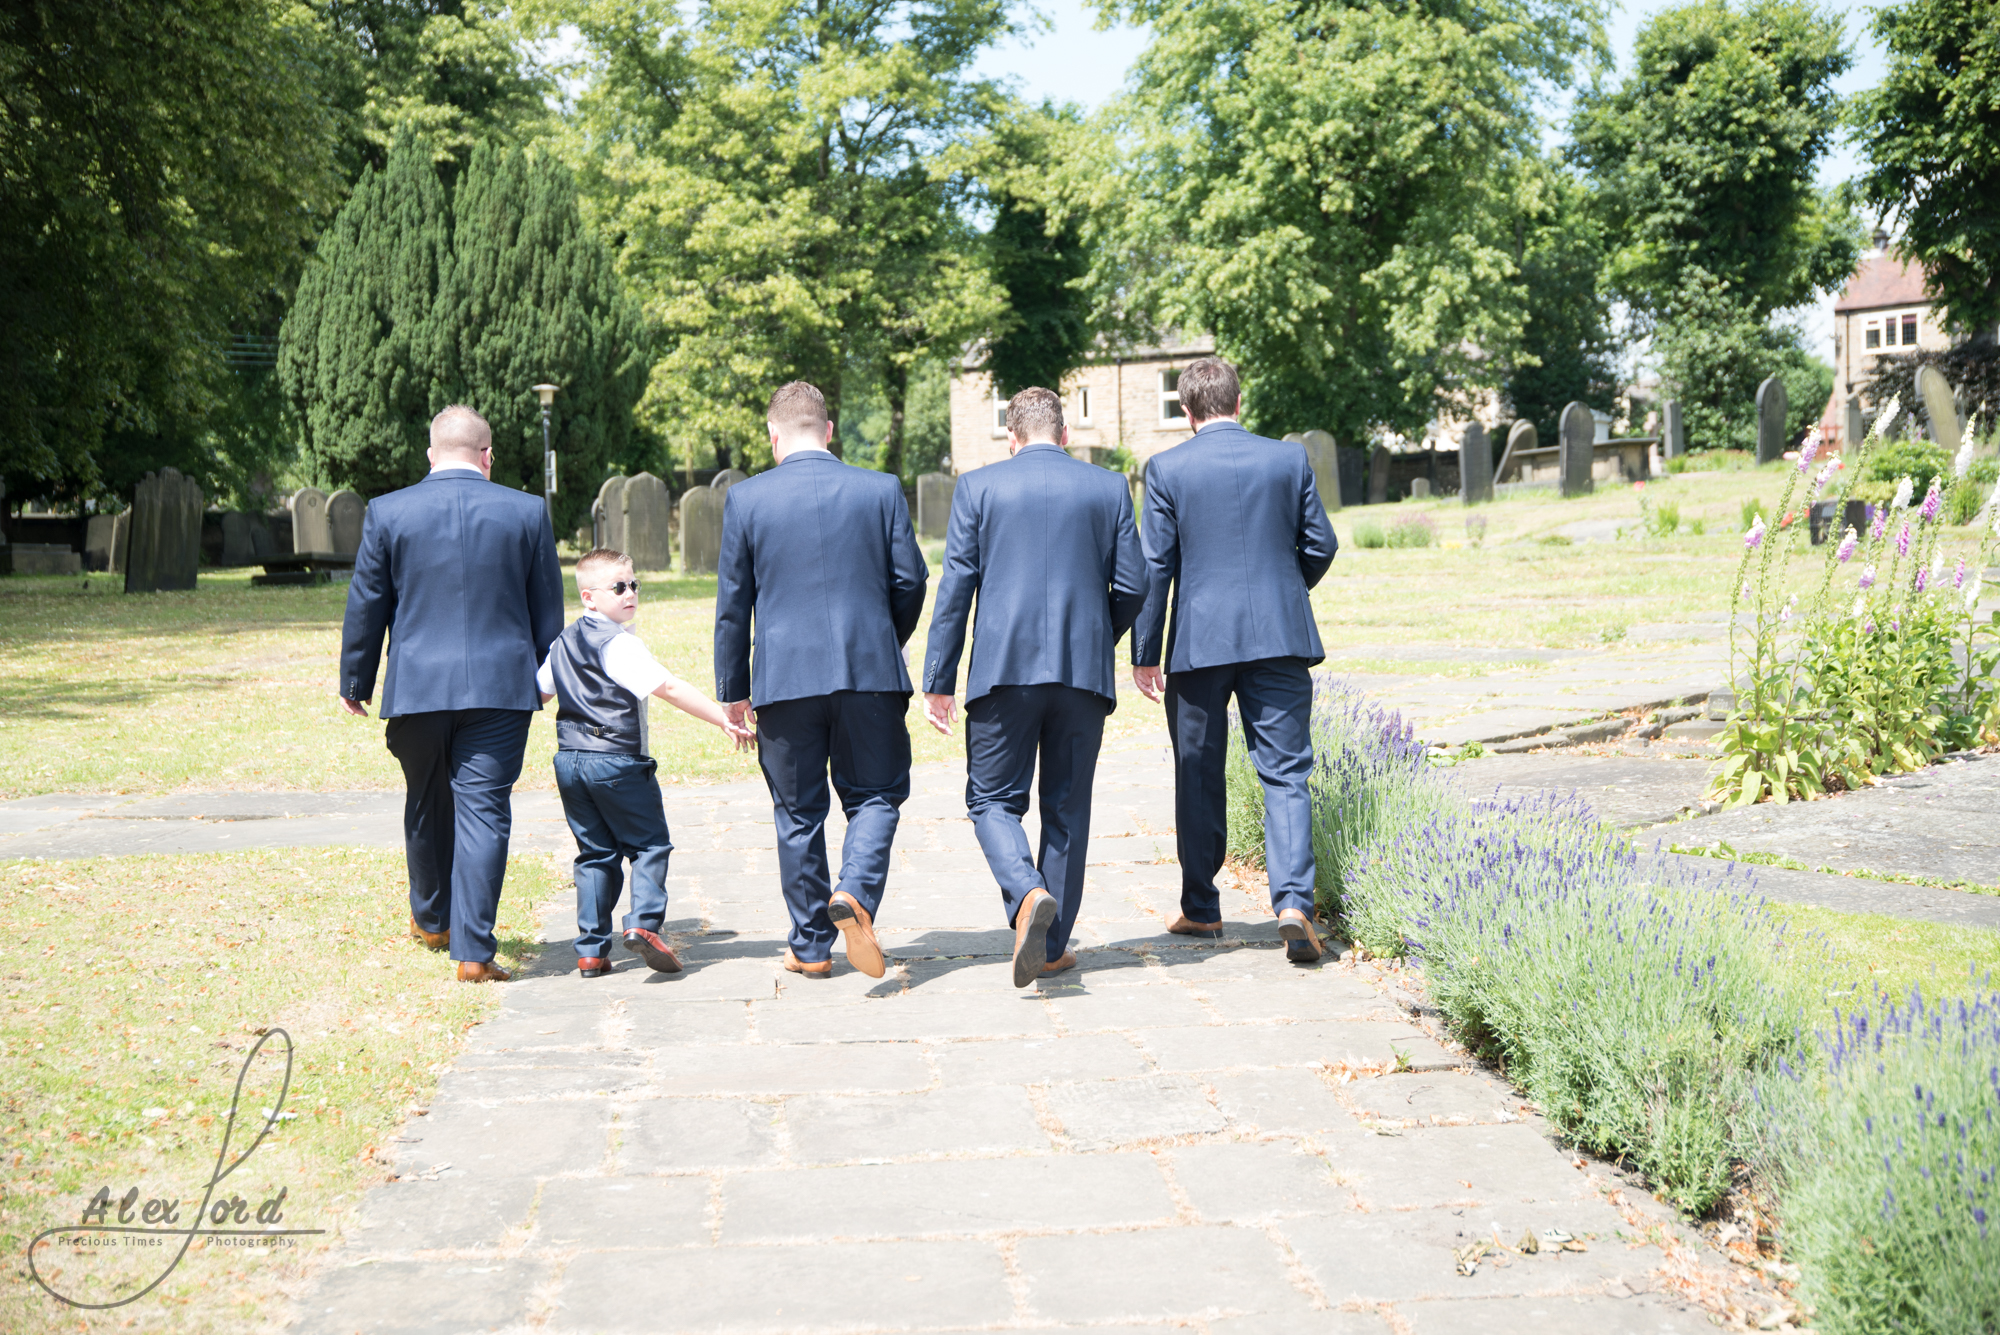 Groom, three ushers and the page boy walk towards the church on a hot sunny day